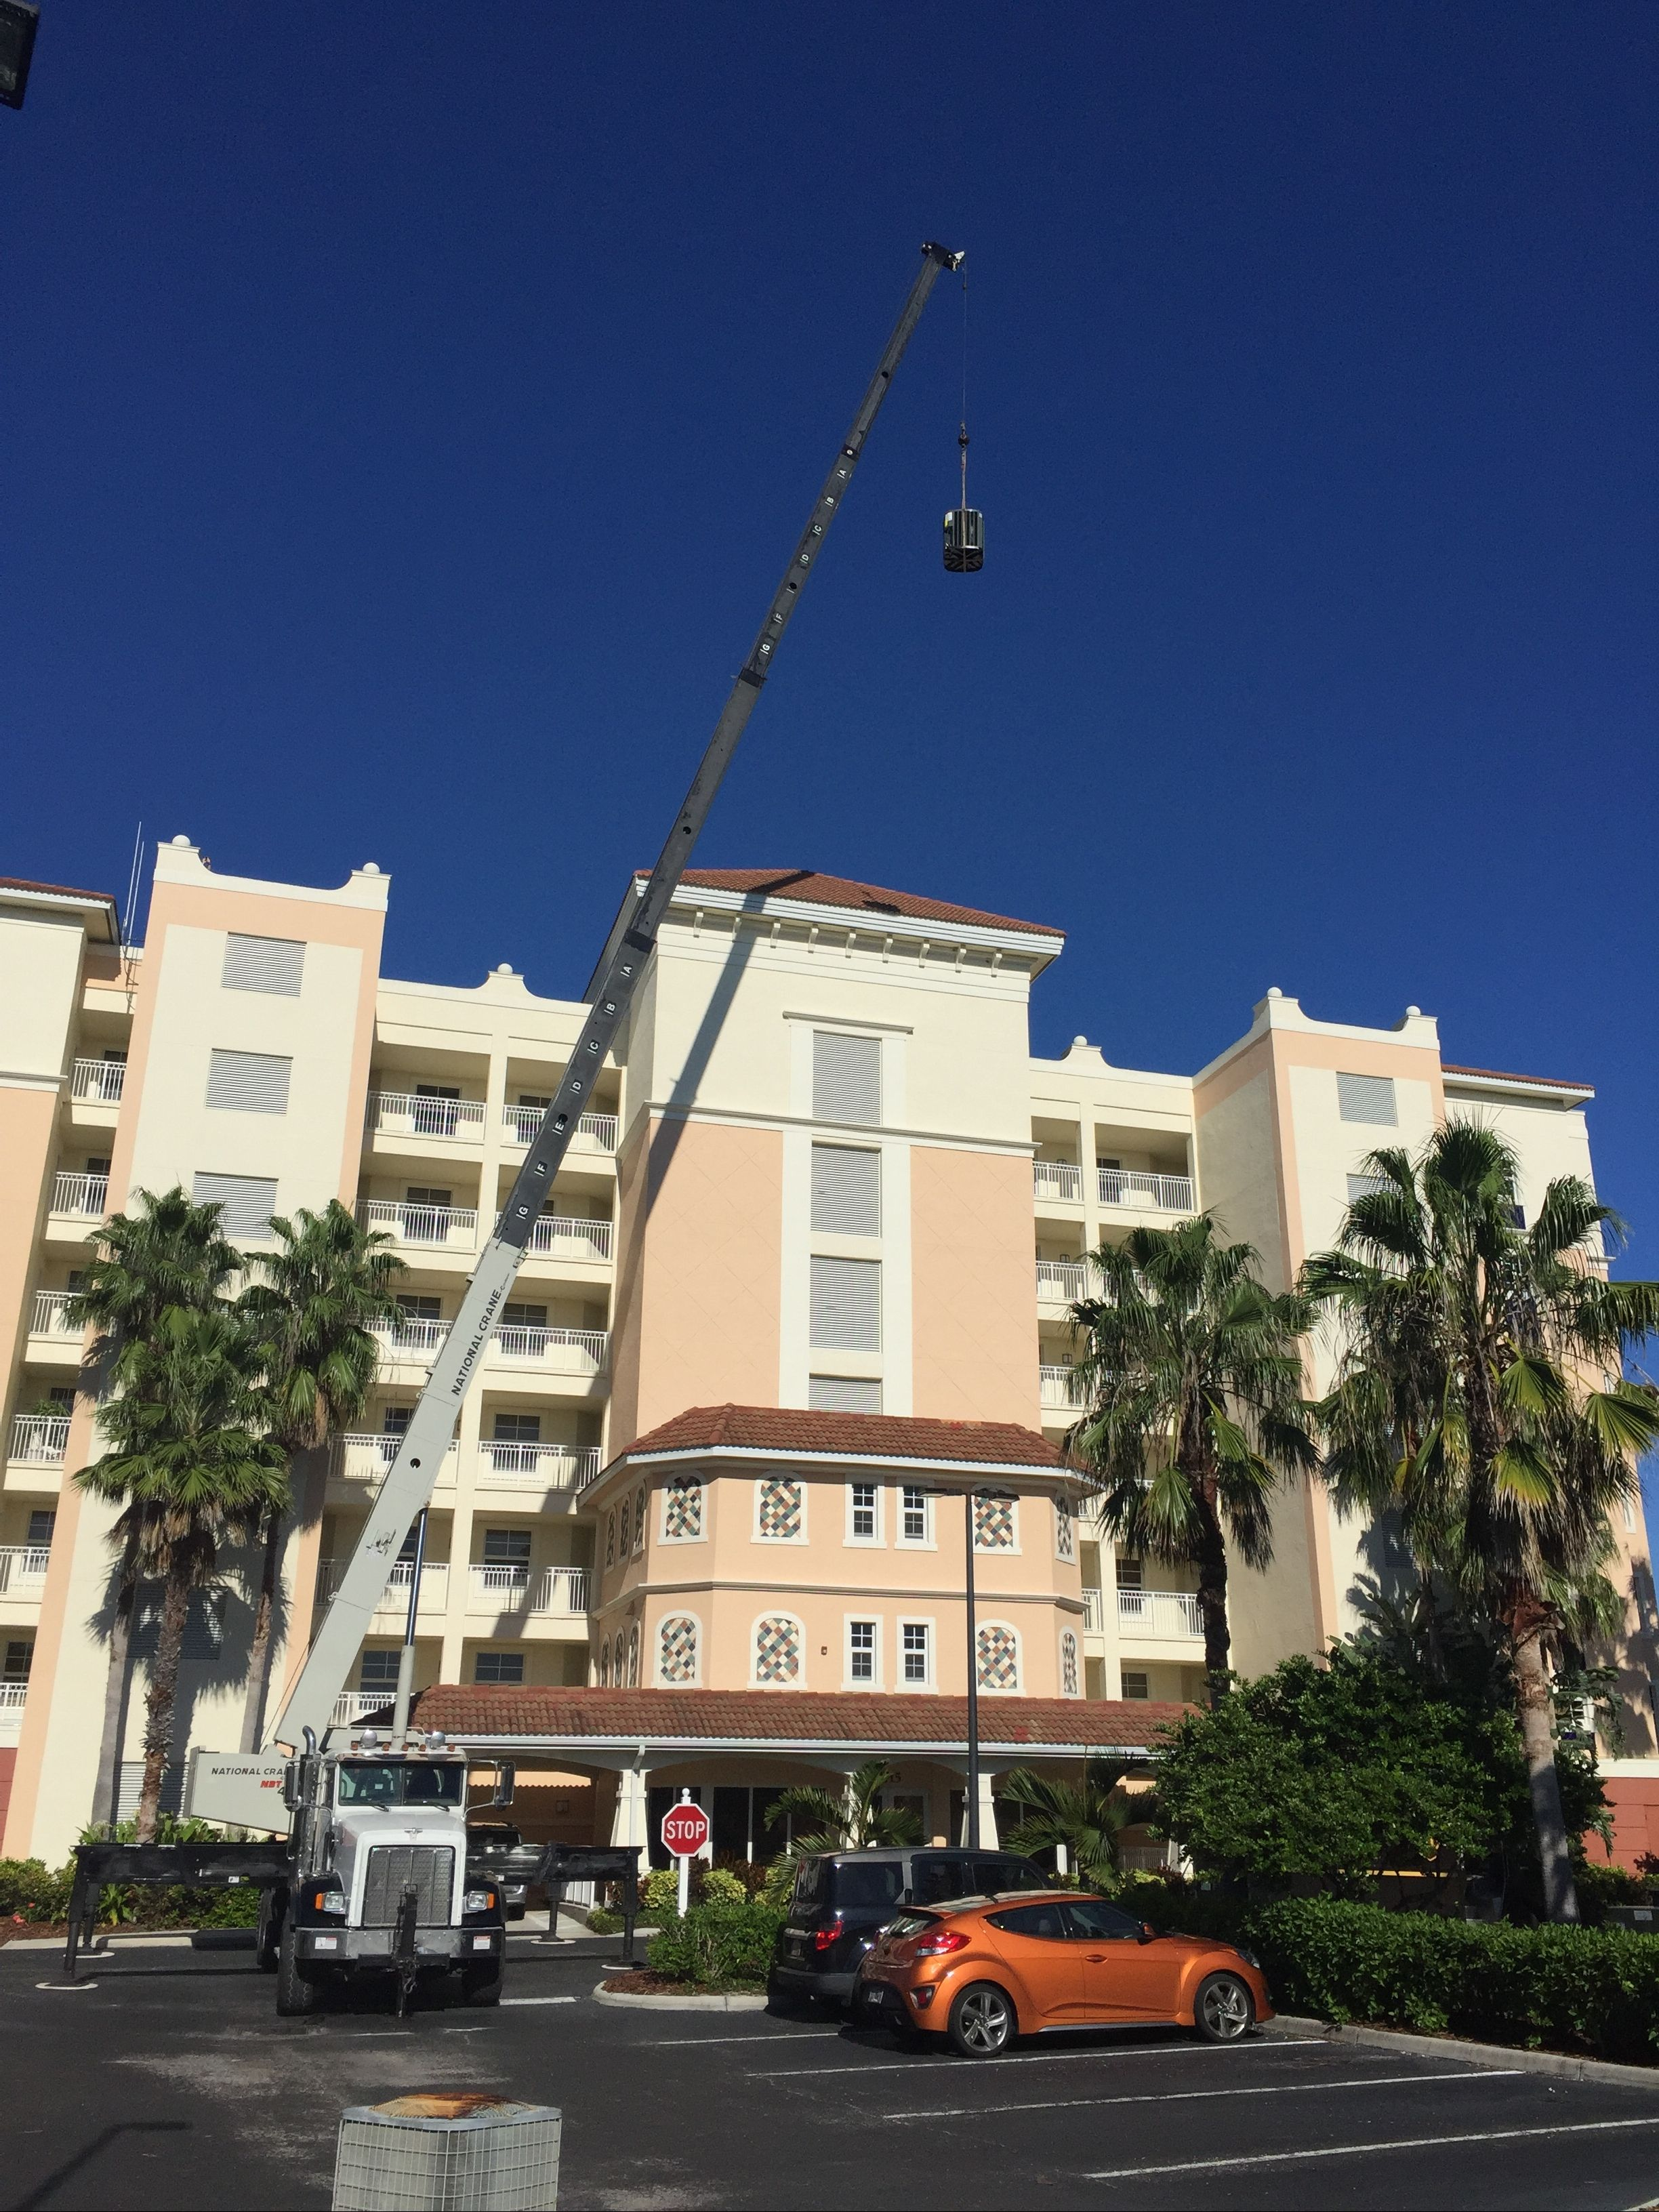 Air Conditioning unit being installed at a hotel in Sarasota.